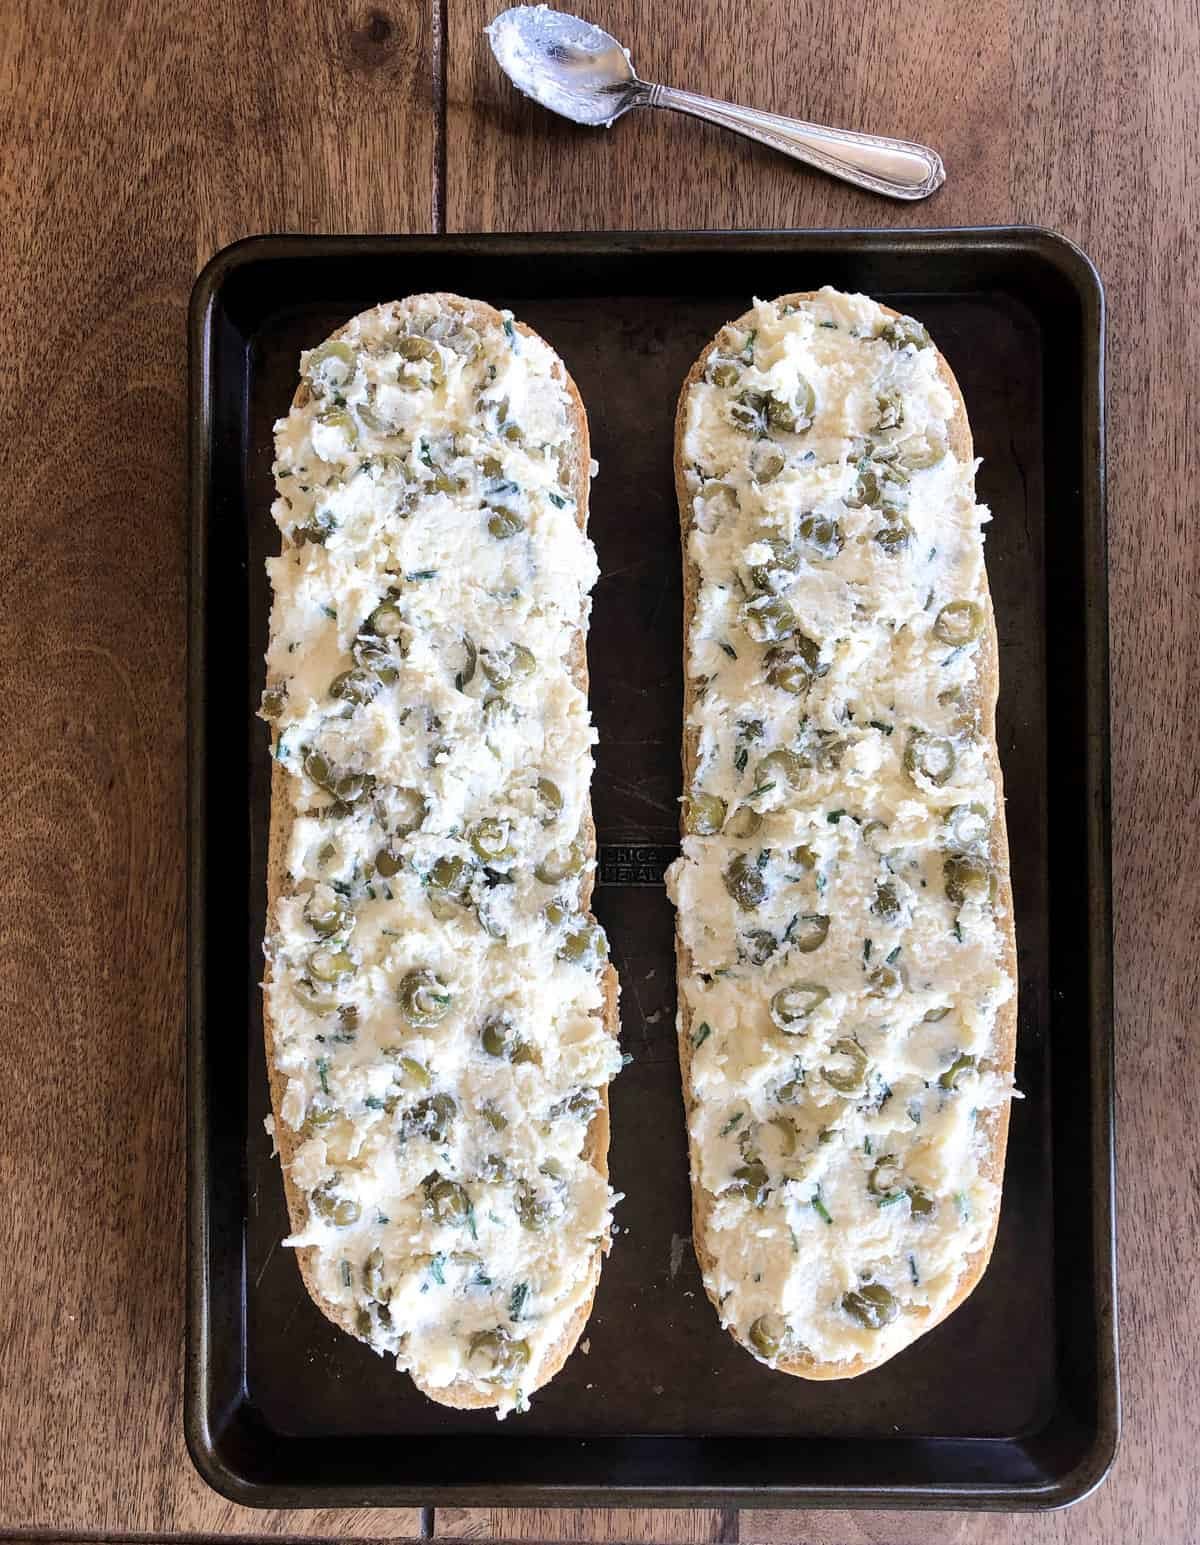 Spread the mixture onto both halves of the bread and bake in a 350-degree oven for 20 minutes.